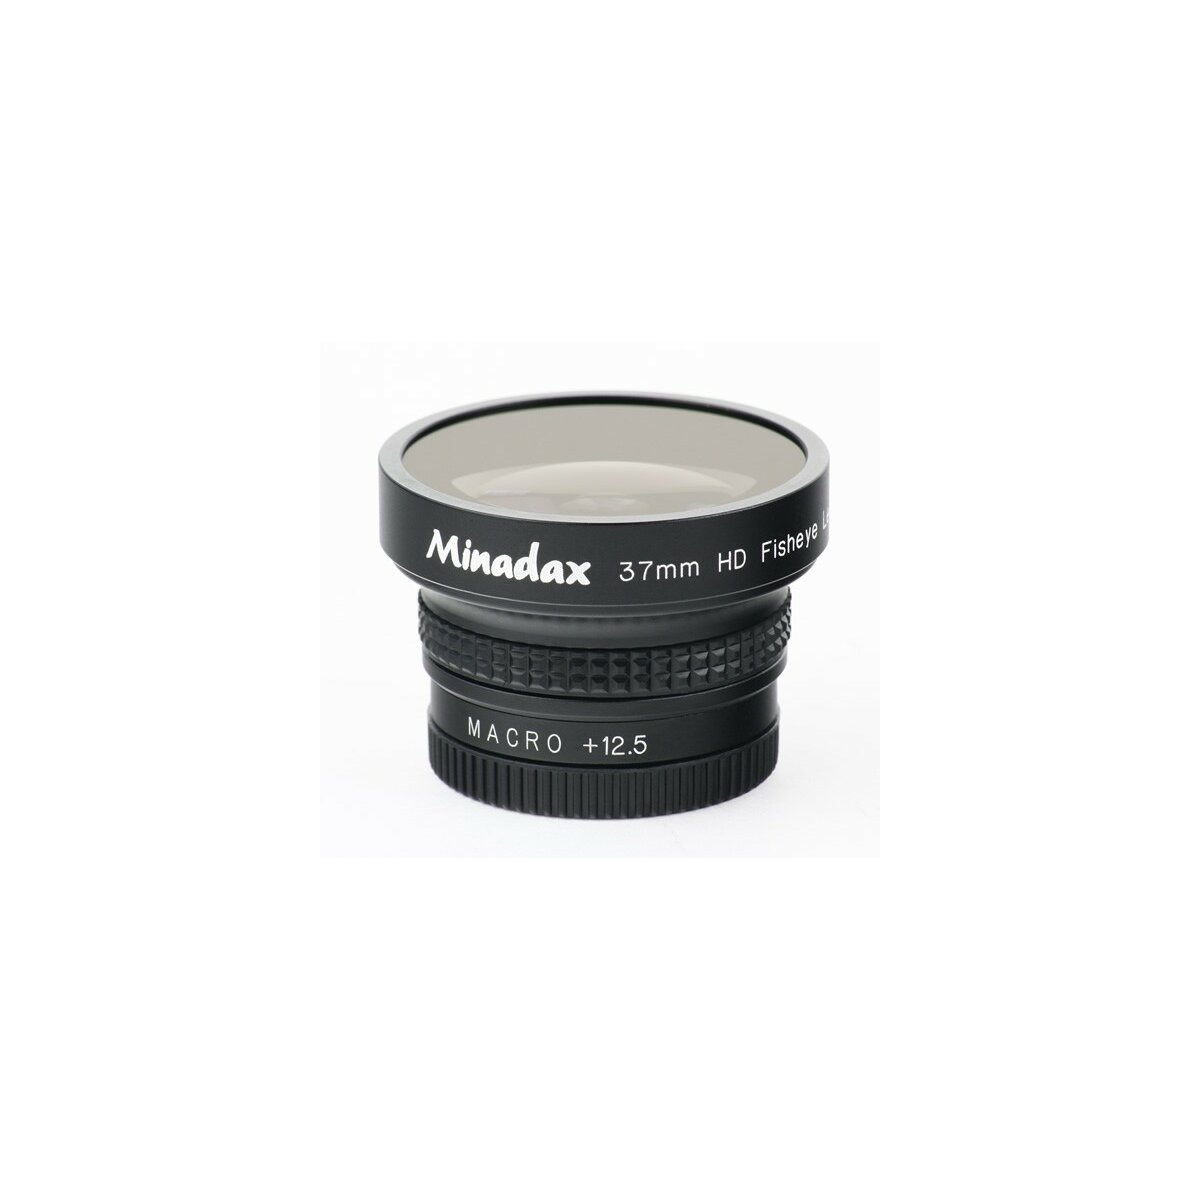 0.42x Minadax Fisheye Vorsatz fuer JVC GZ-MG330REX, GZ-MG330HEG, GZ-MG330AEX, GZ-MG331HEG, GZ-MG335HEX, GZ-MG365HEX, GZ-MG435BEX, GZ-MG465BEX, GZ-MG610, GZ-MG630, GZ-MG645